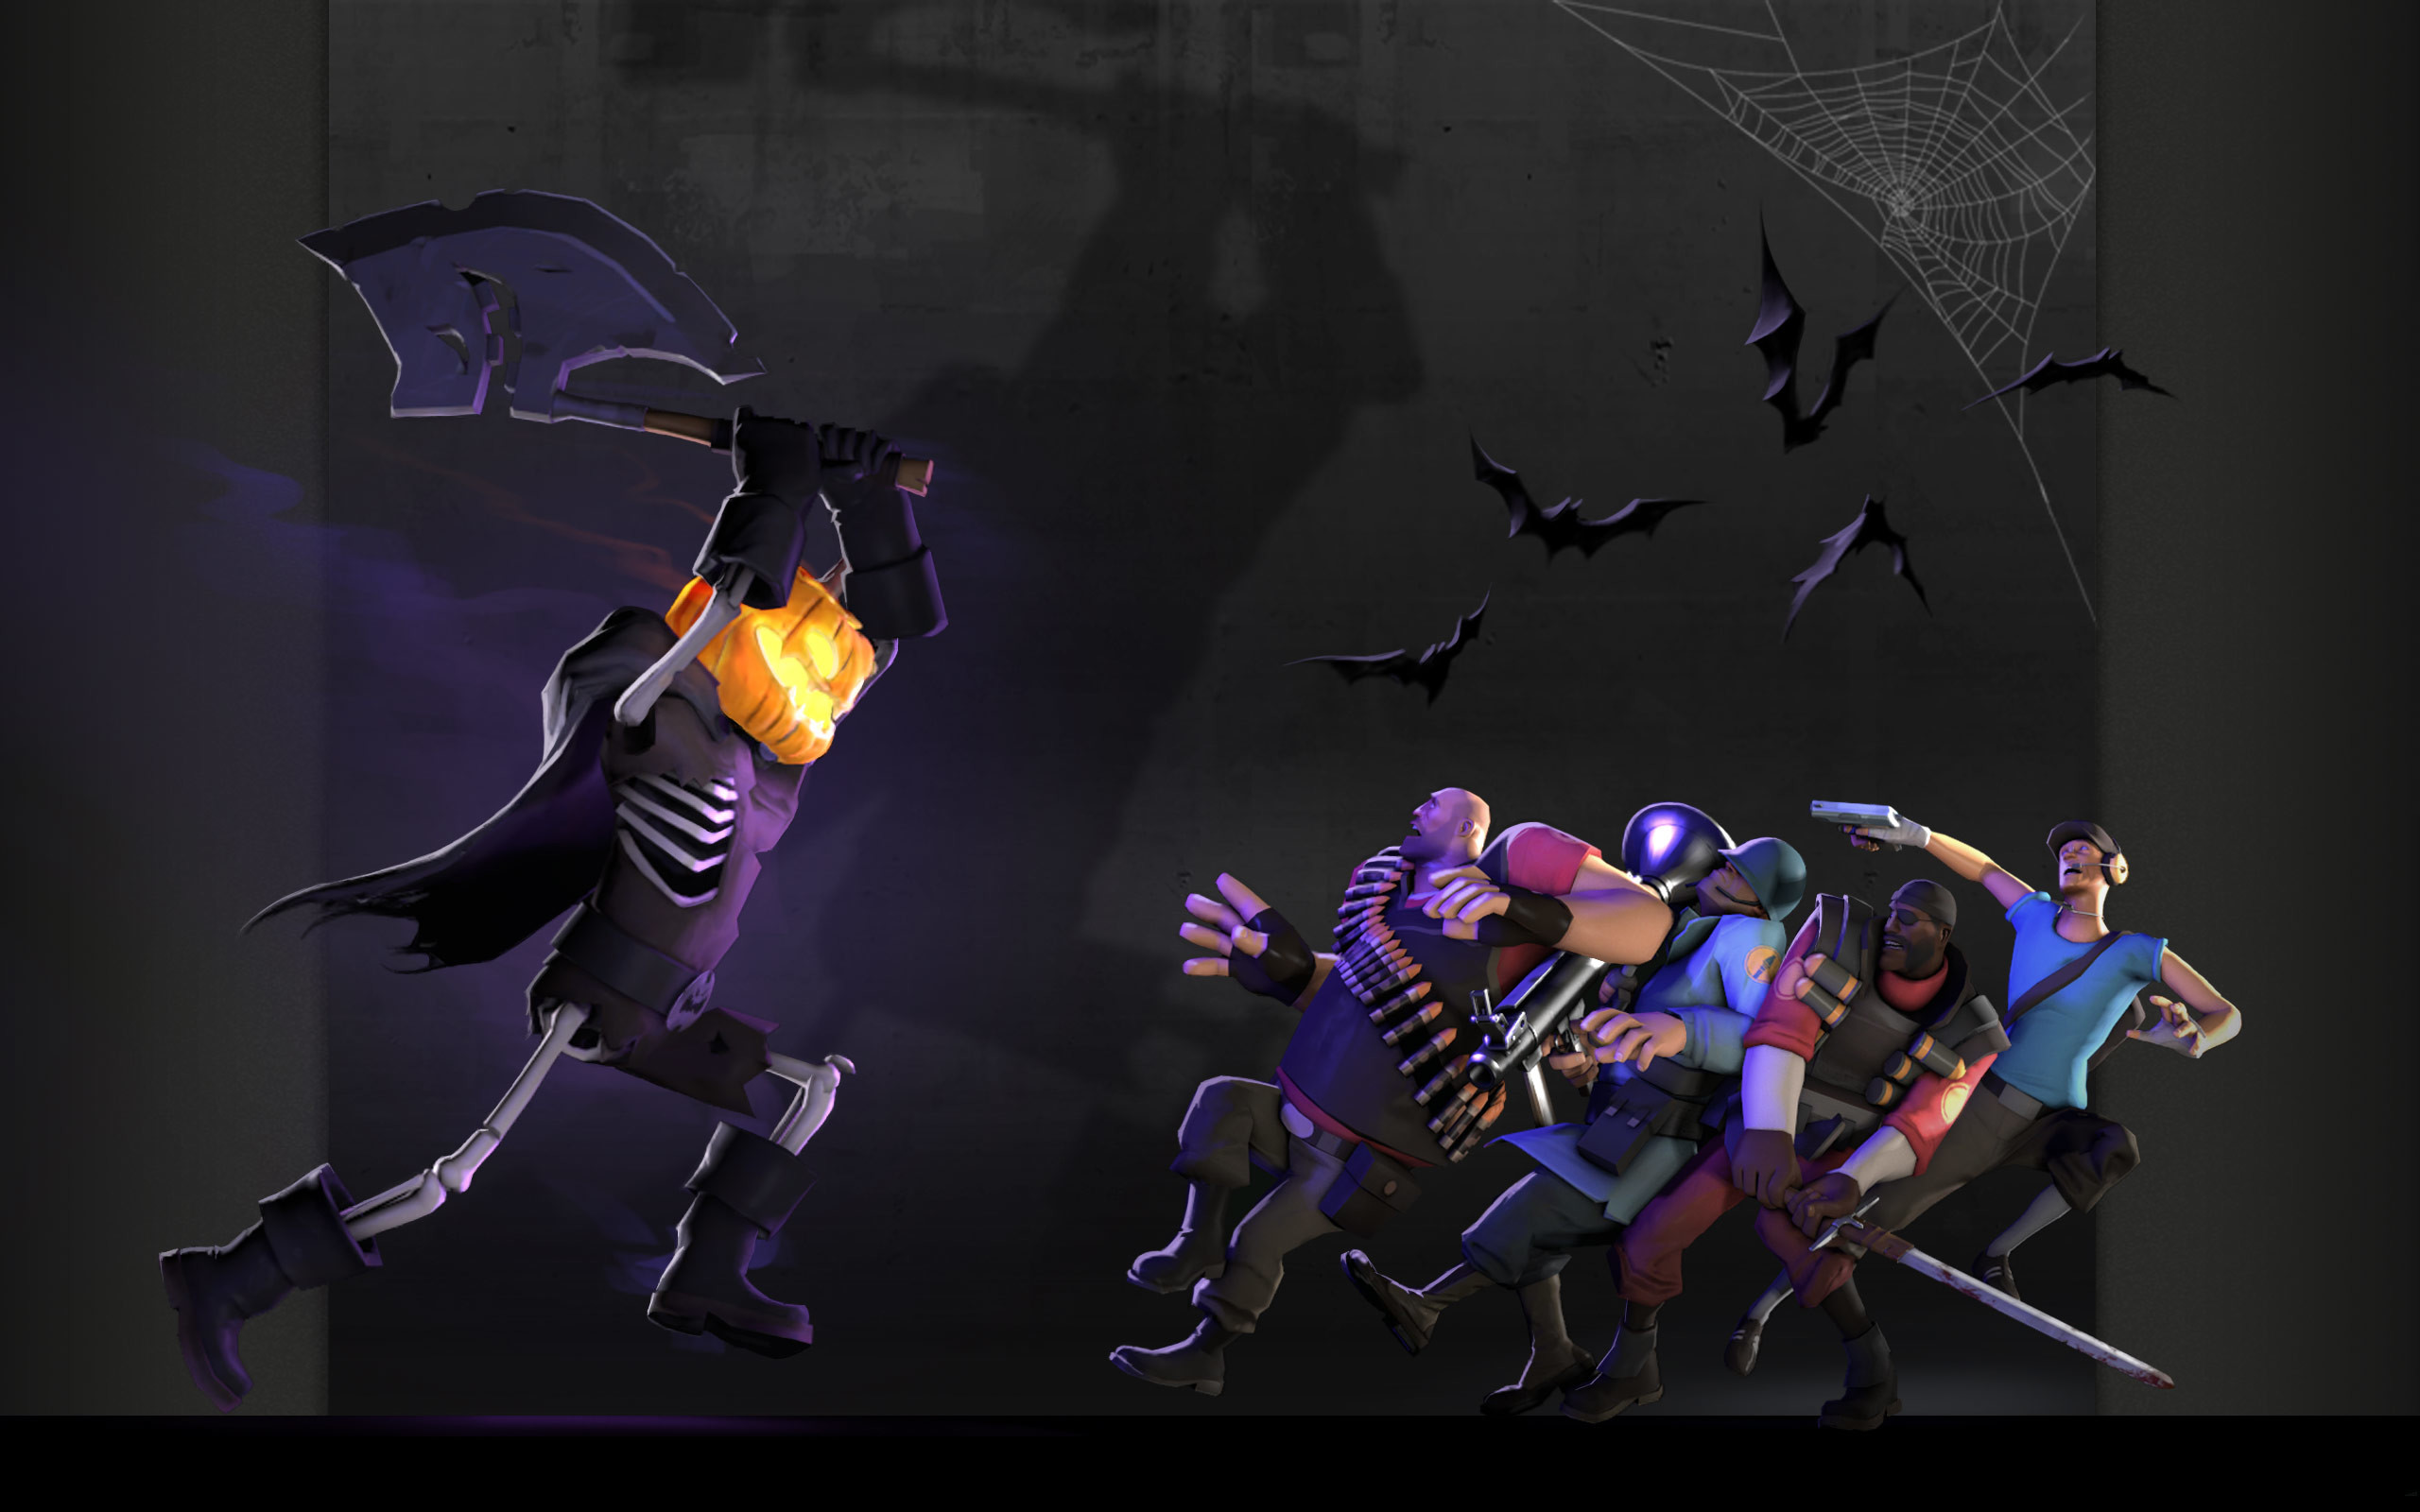 2560x1600 Heavy tf2 halloween scout tf2 demoman tf2 team fortress 2 jack o lantern  bats spider webs soldier tf2 wallpaper |  | 17988 | WallpaperUP